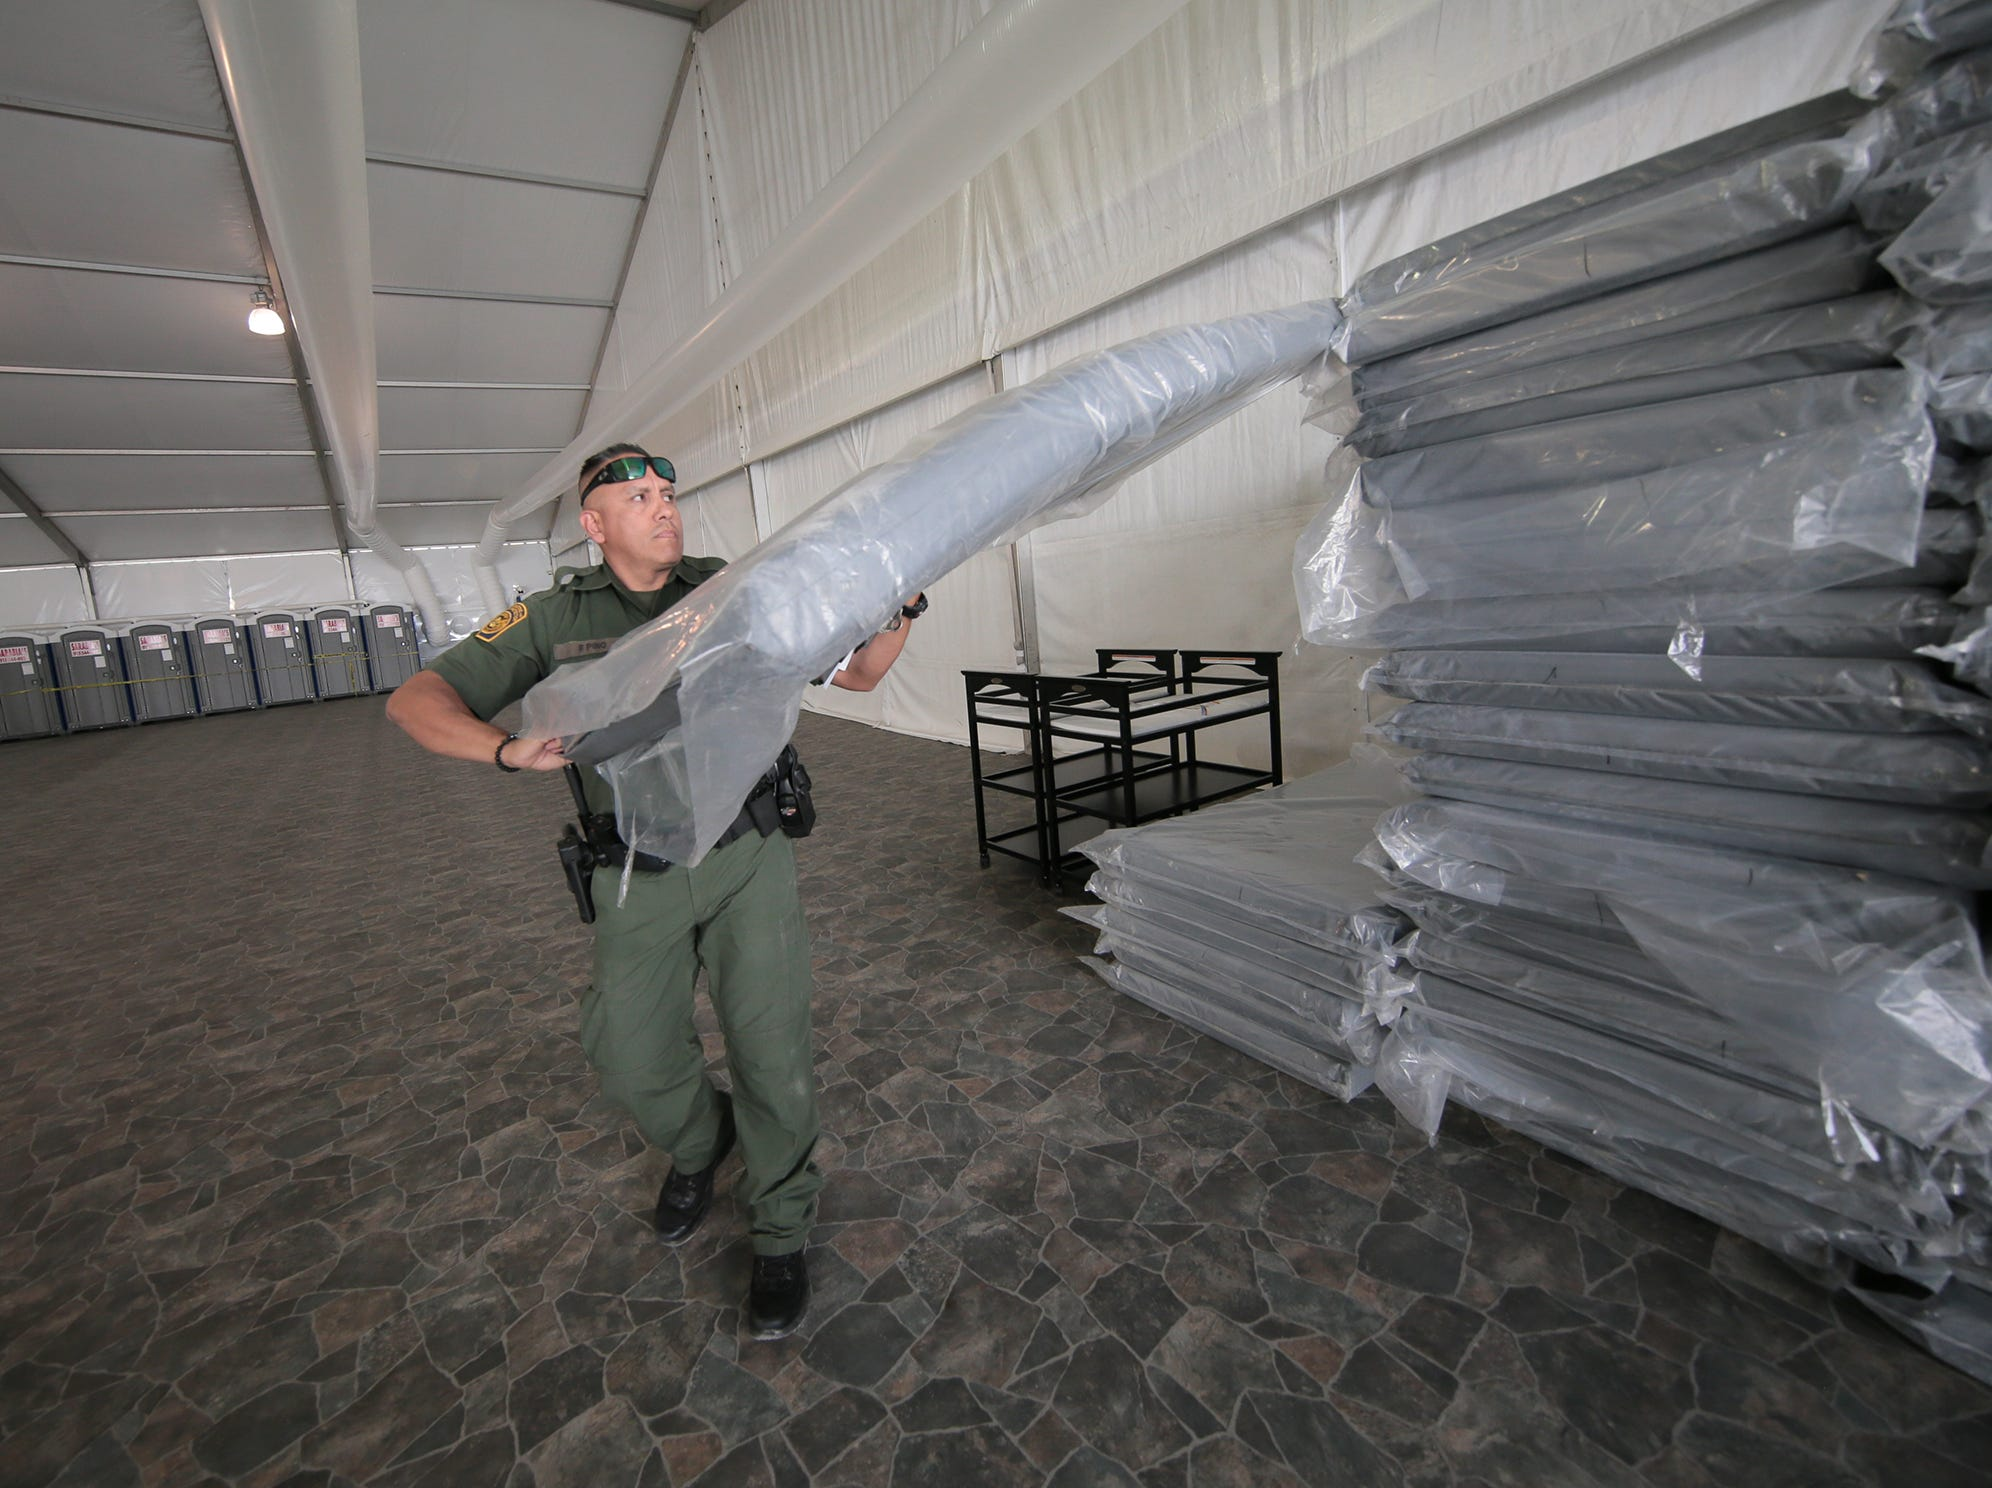 The new 500-bed migrant shelter on Border Patrol property in northeast El Paso consists of a processing area, four 125-bed pods, medical facilities and catered meals.